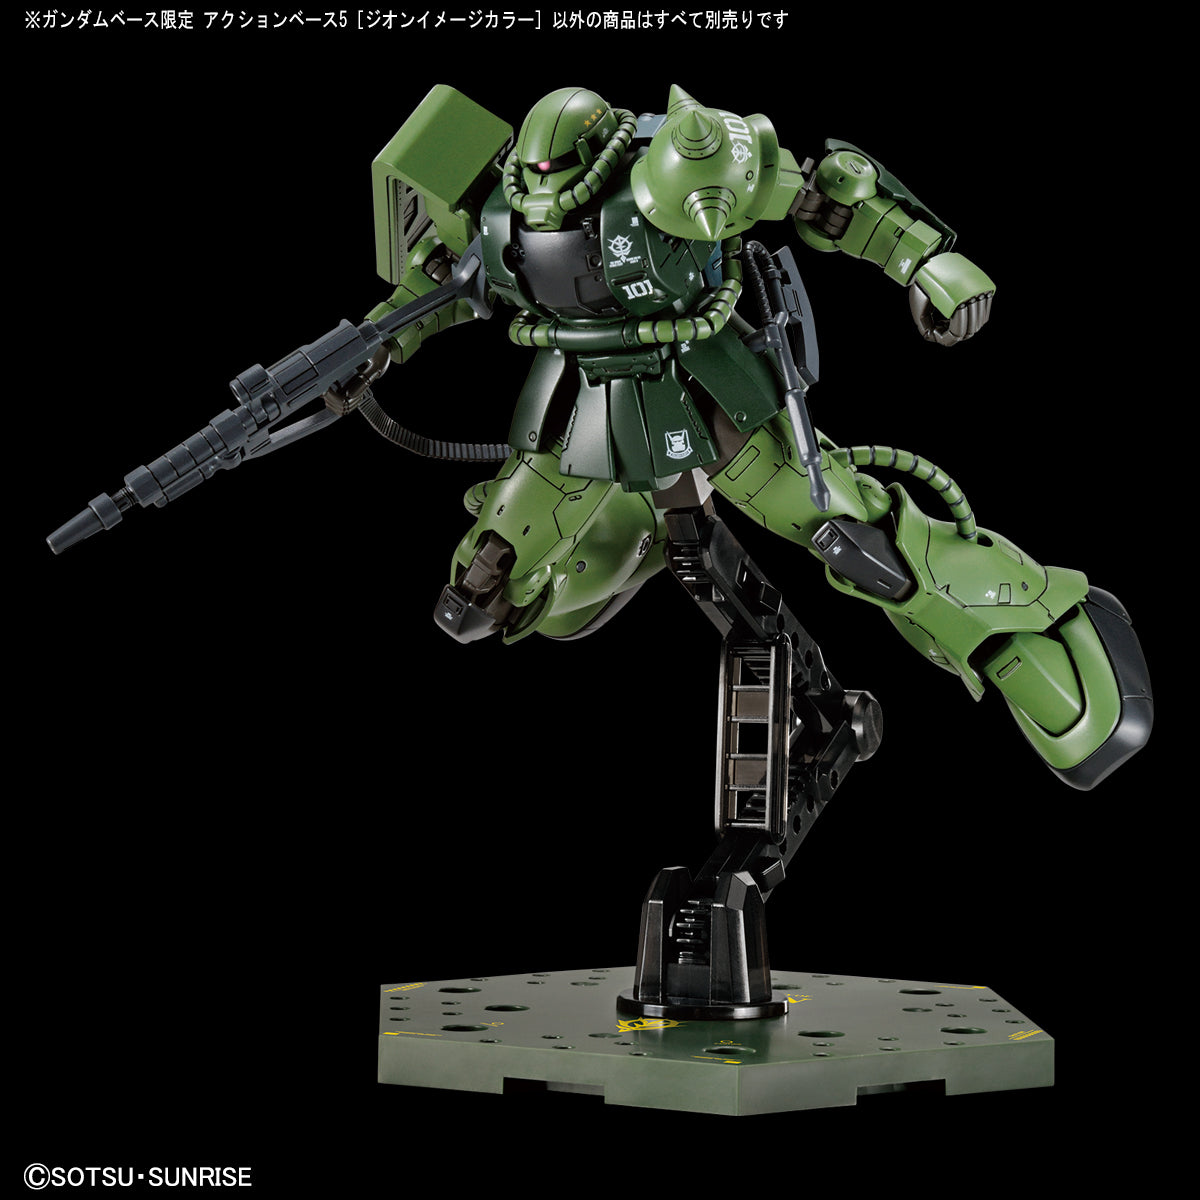 Gundam Base Limited Action Base 5 [Zeon Image Colors]